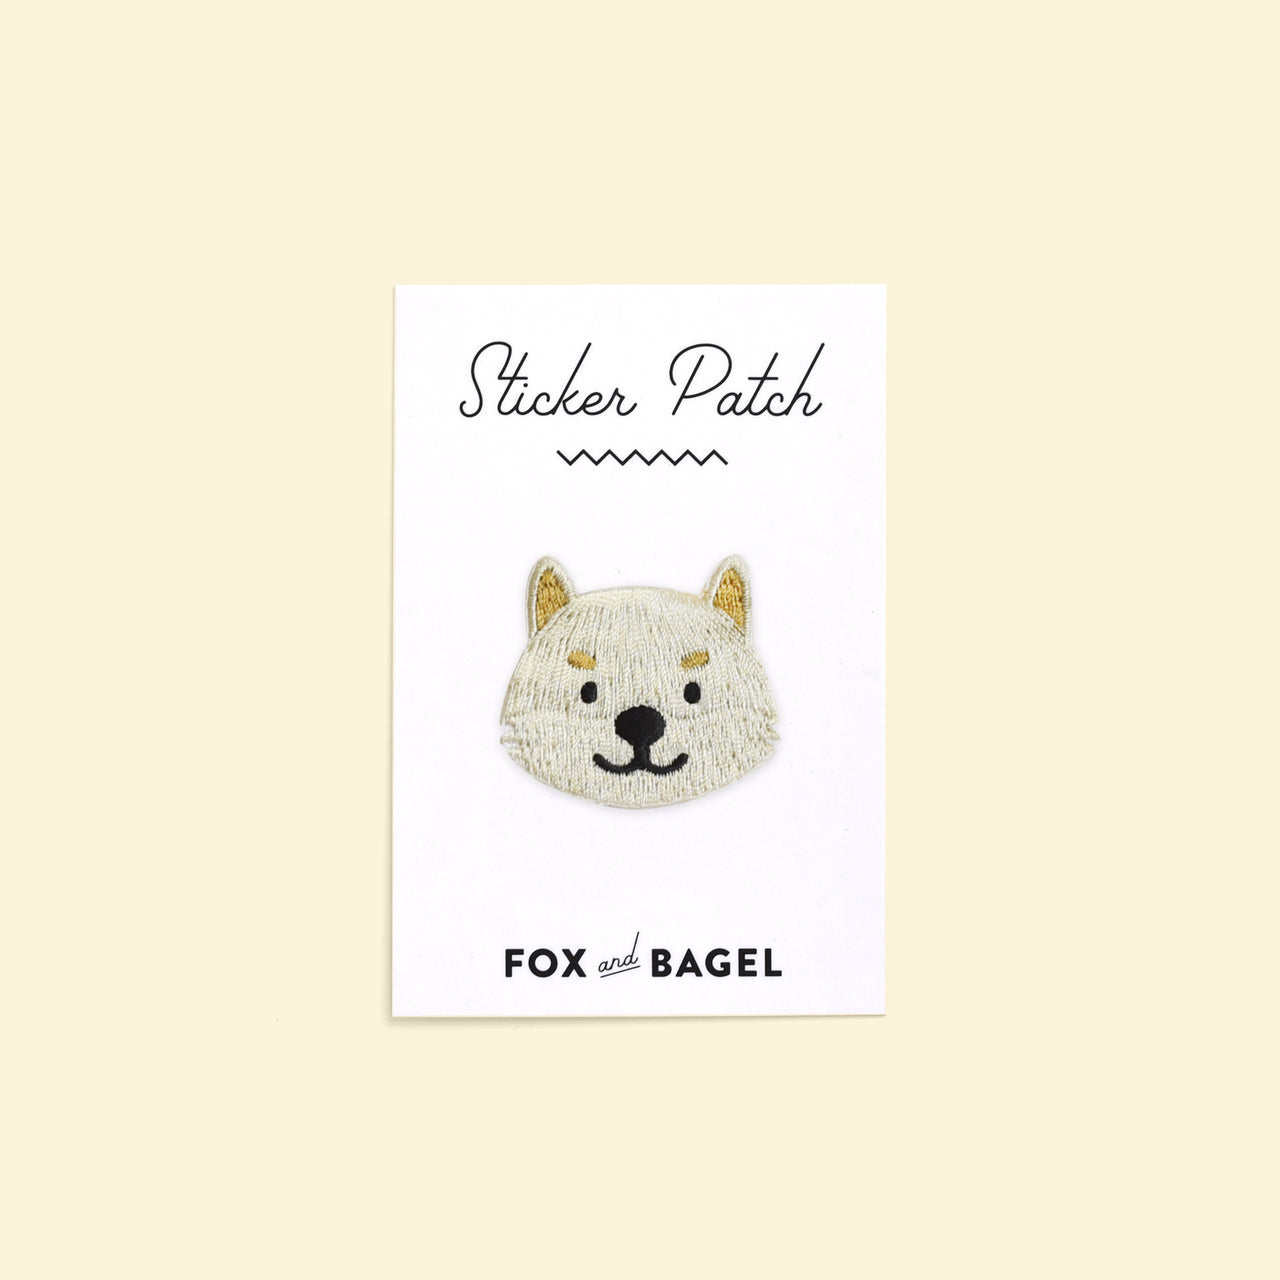 Cream Shiba Inu dog embroidered sticker patch by Fox & Bagel.